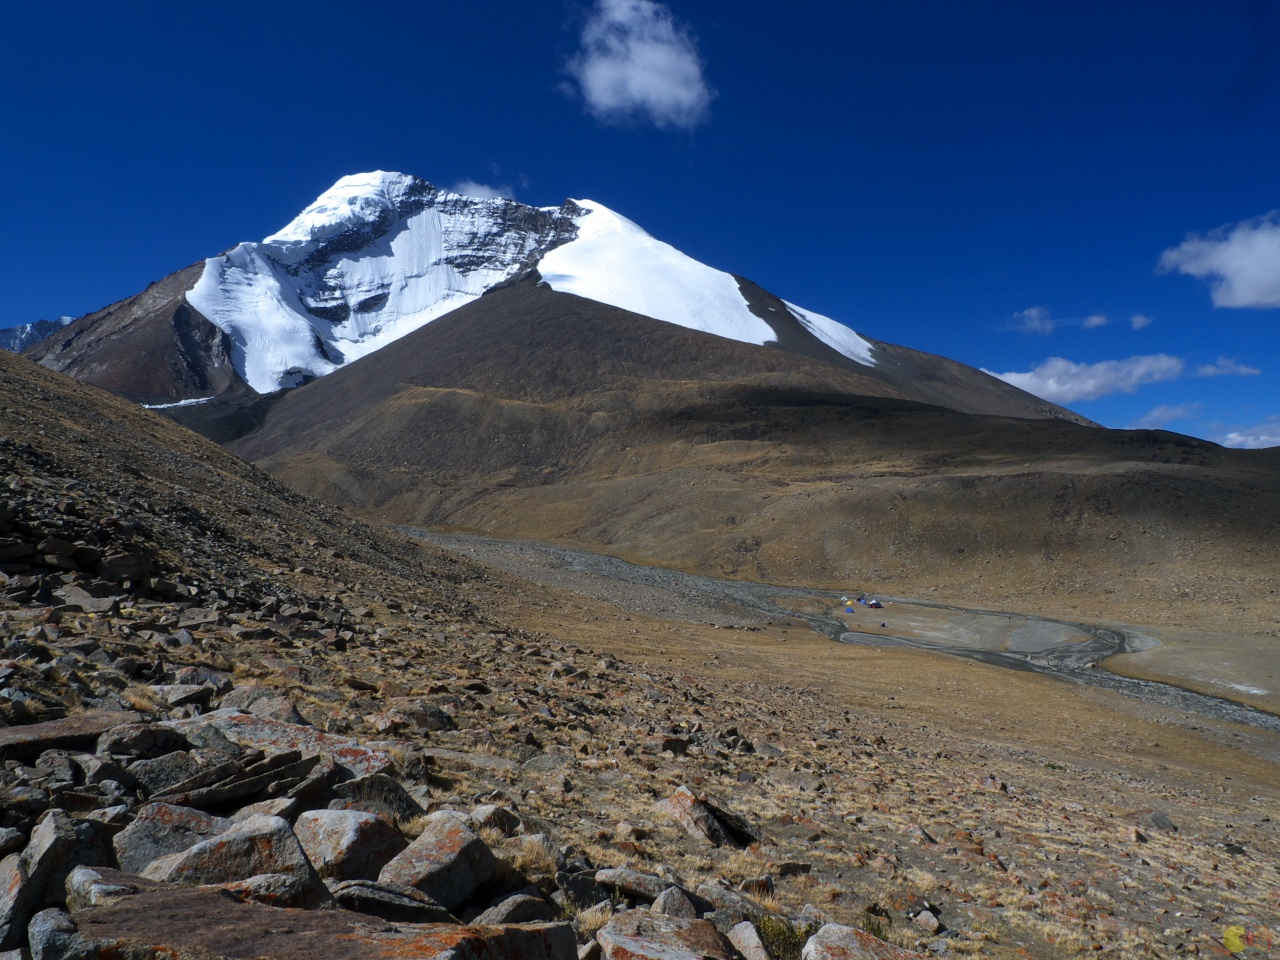 Kang Yatse base camp